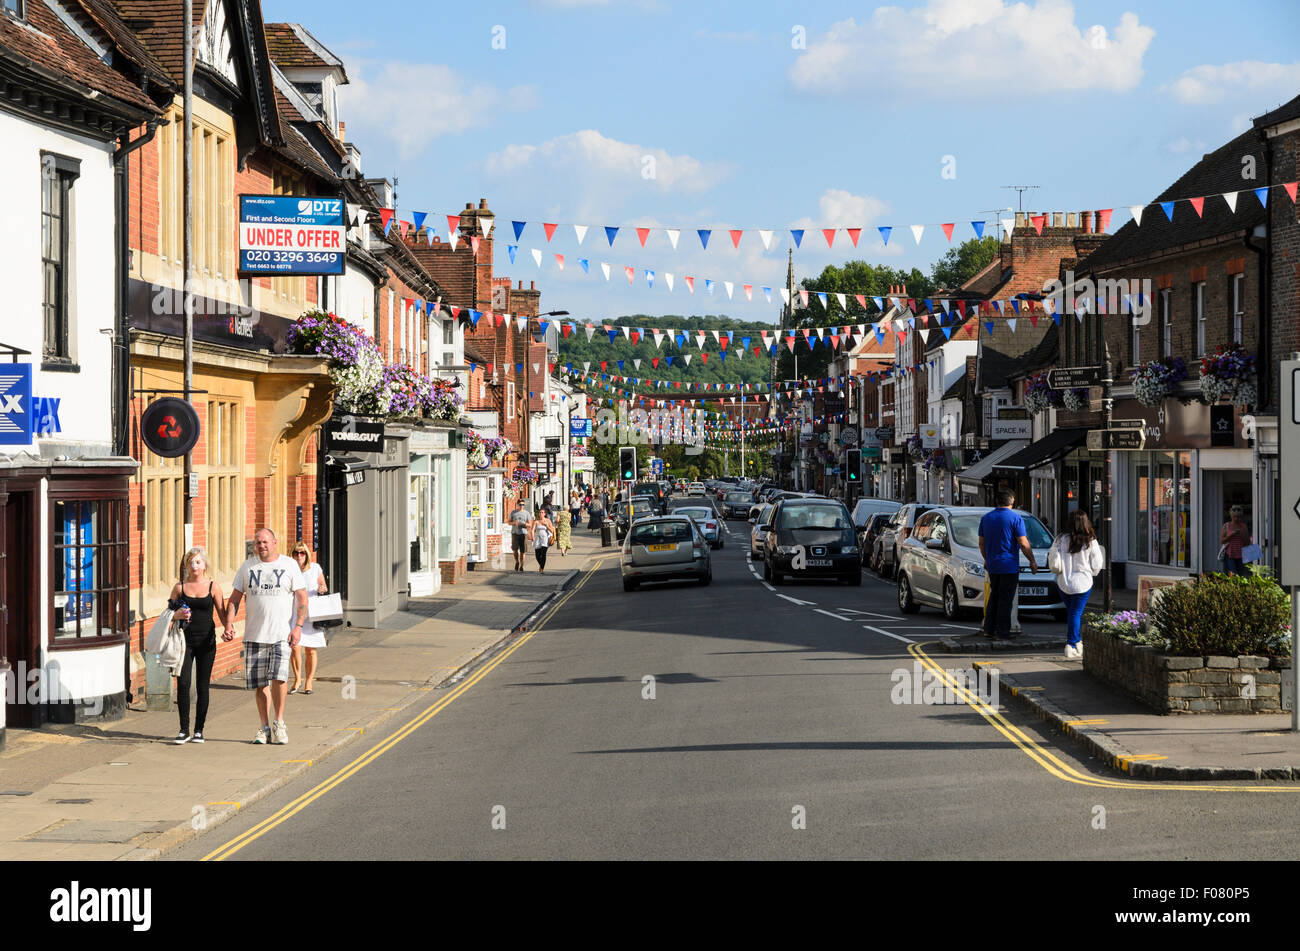 The High Street, Marlow, Buckinghamshire, England, UK. - Stock Image